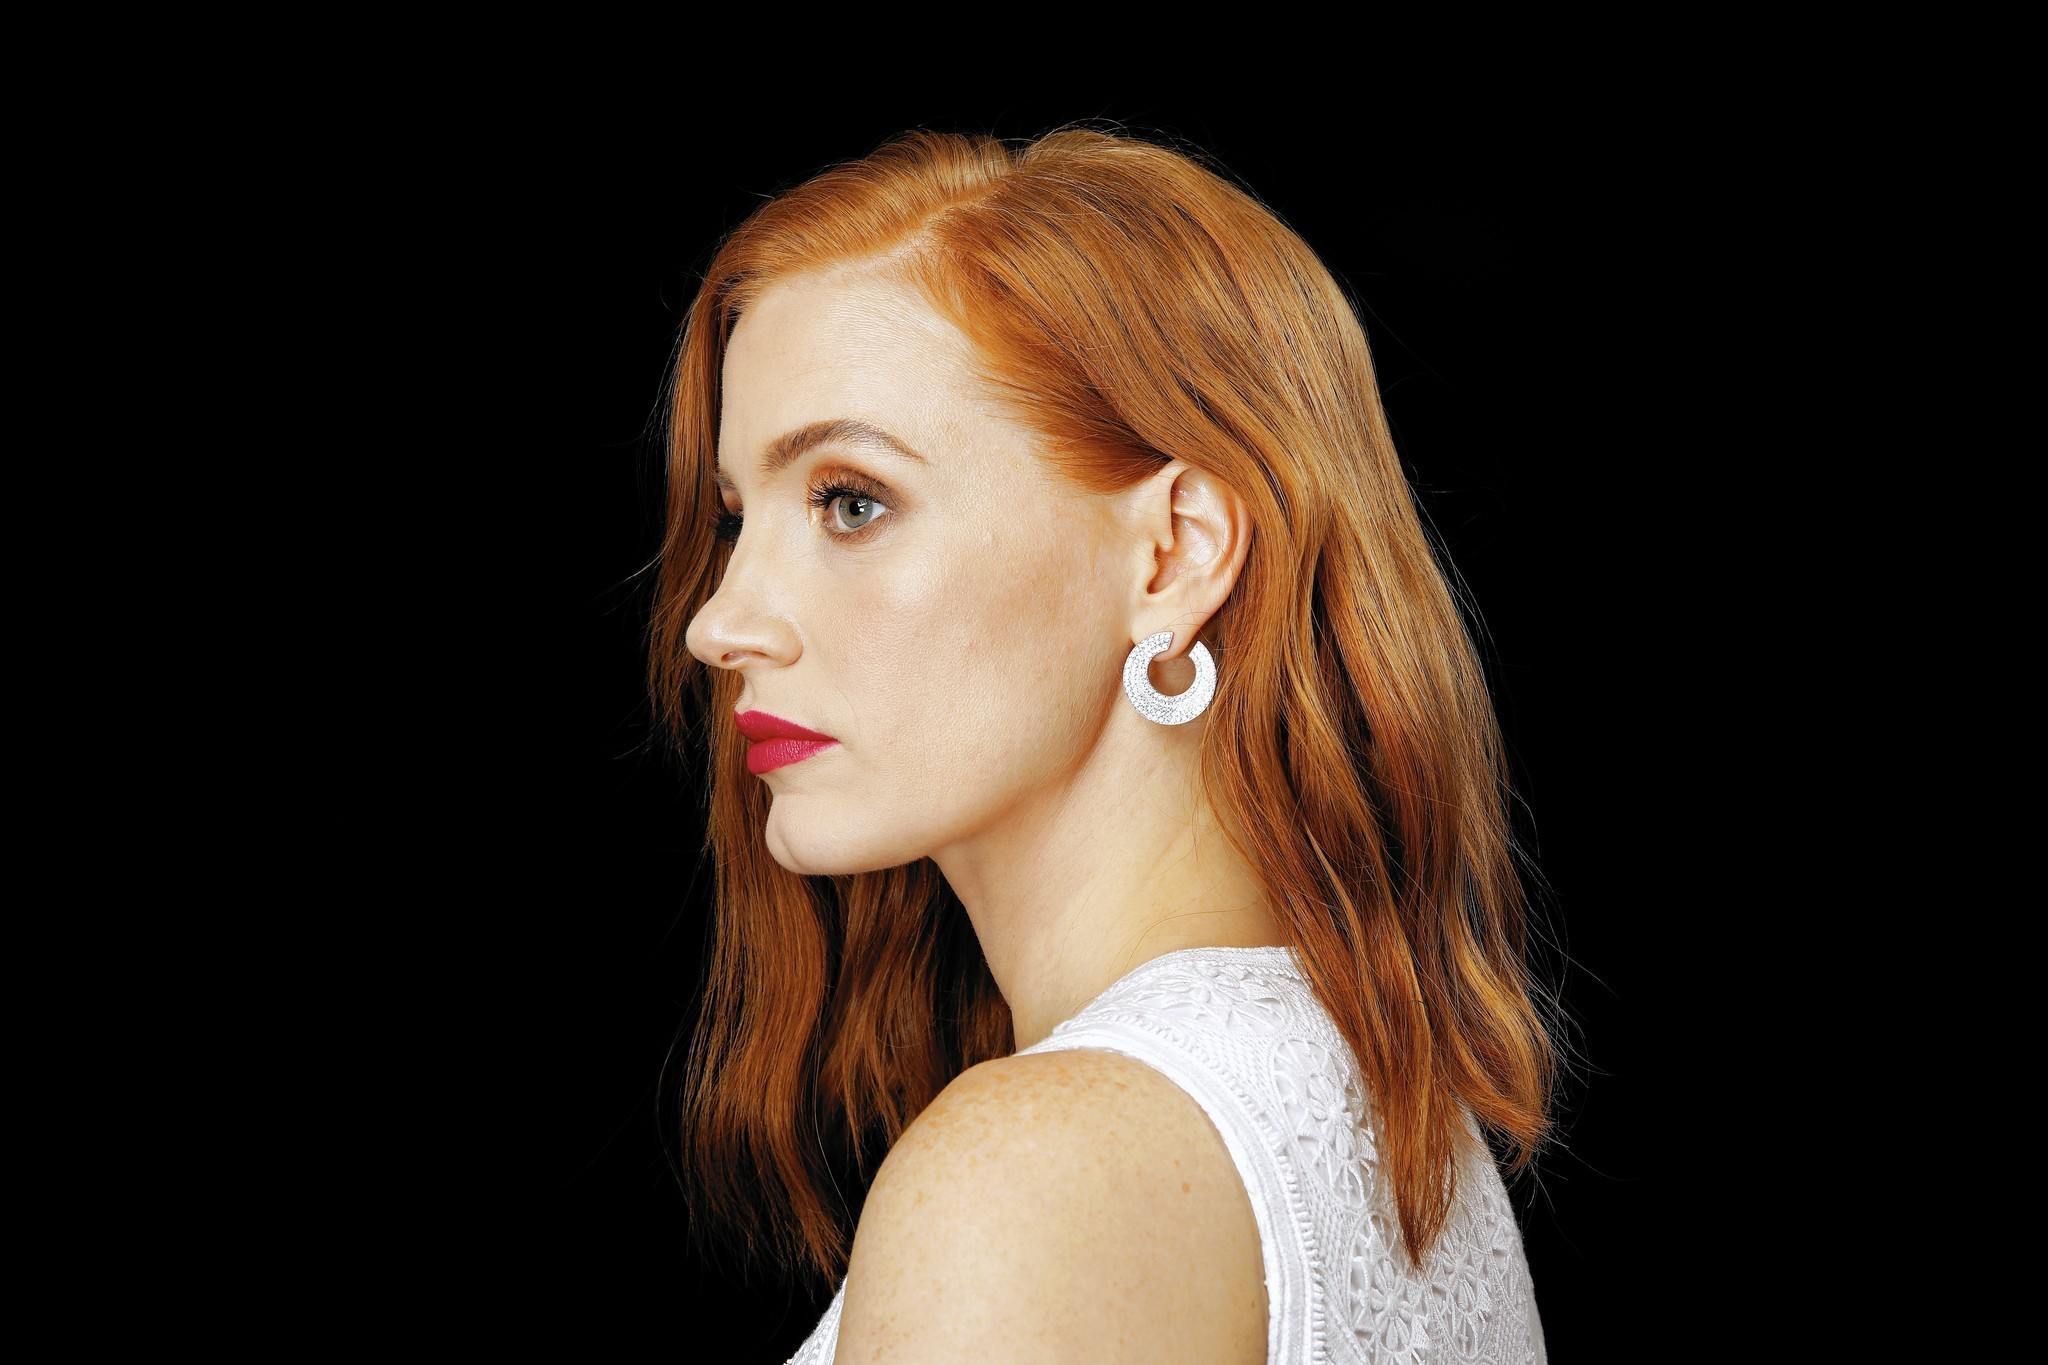 Jessica Chastain winter copper hair colors